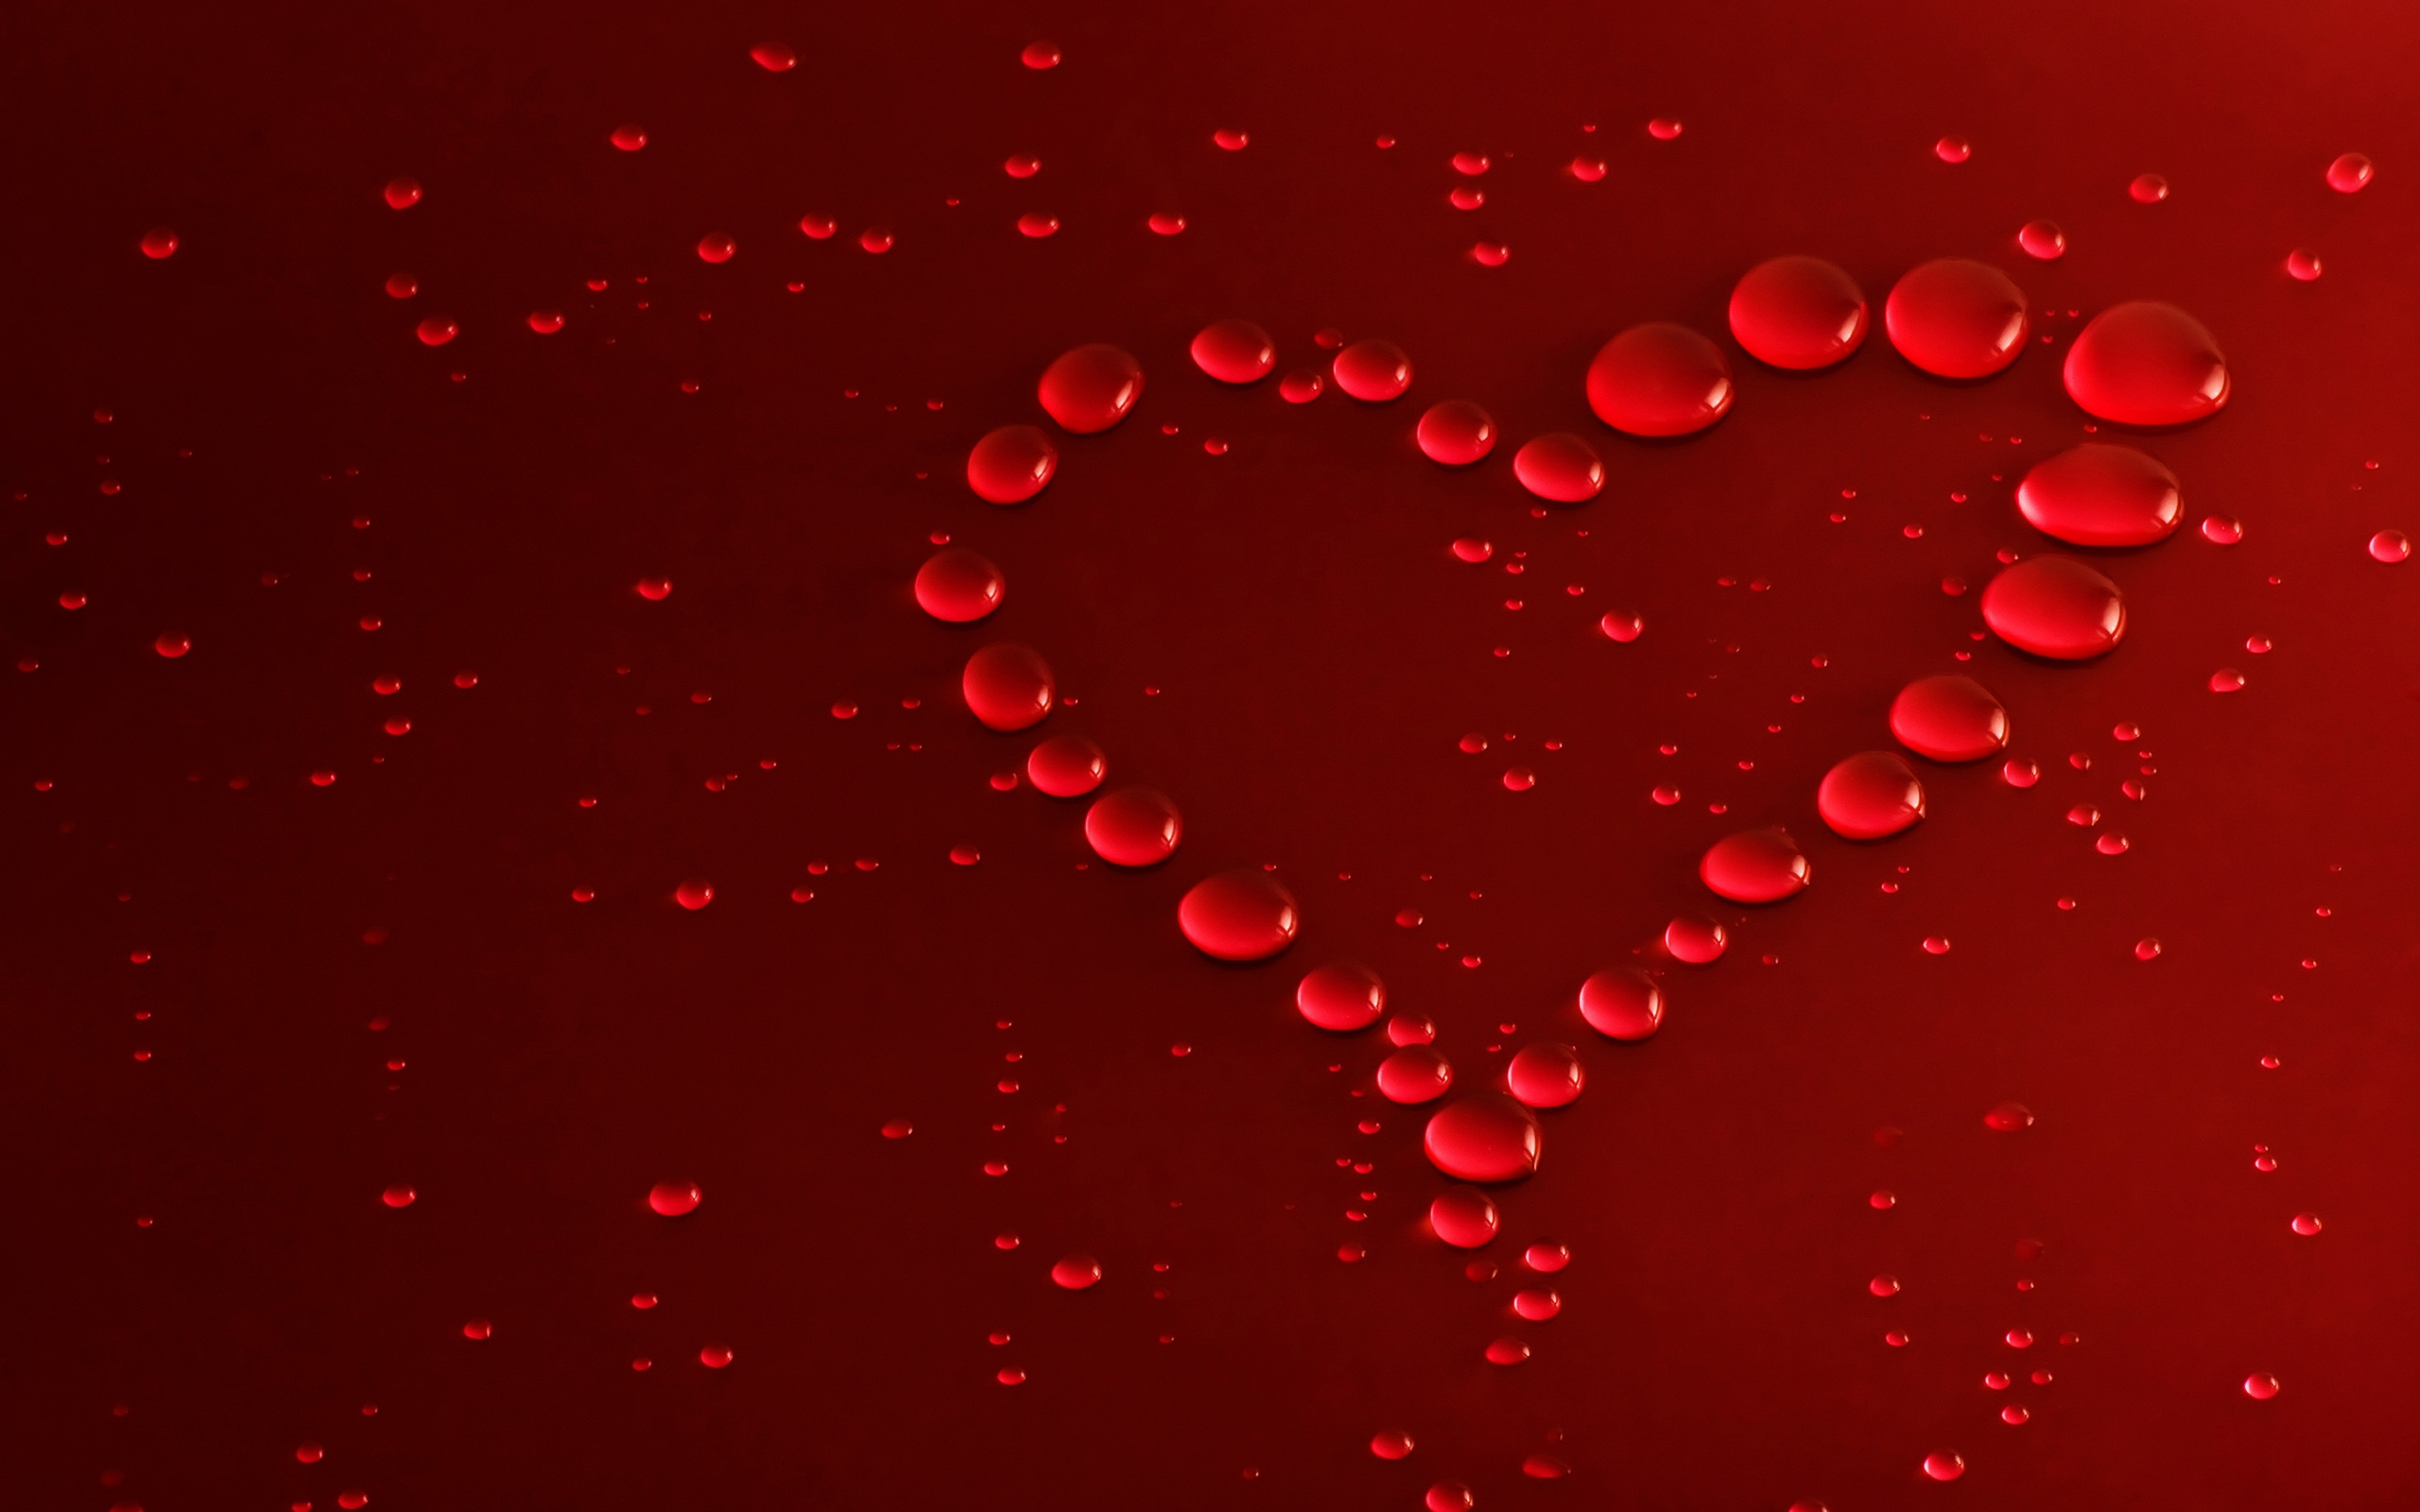 Cute Red Bubbles